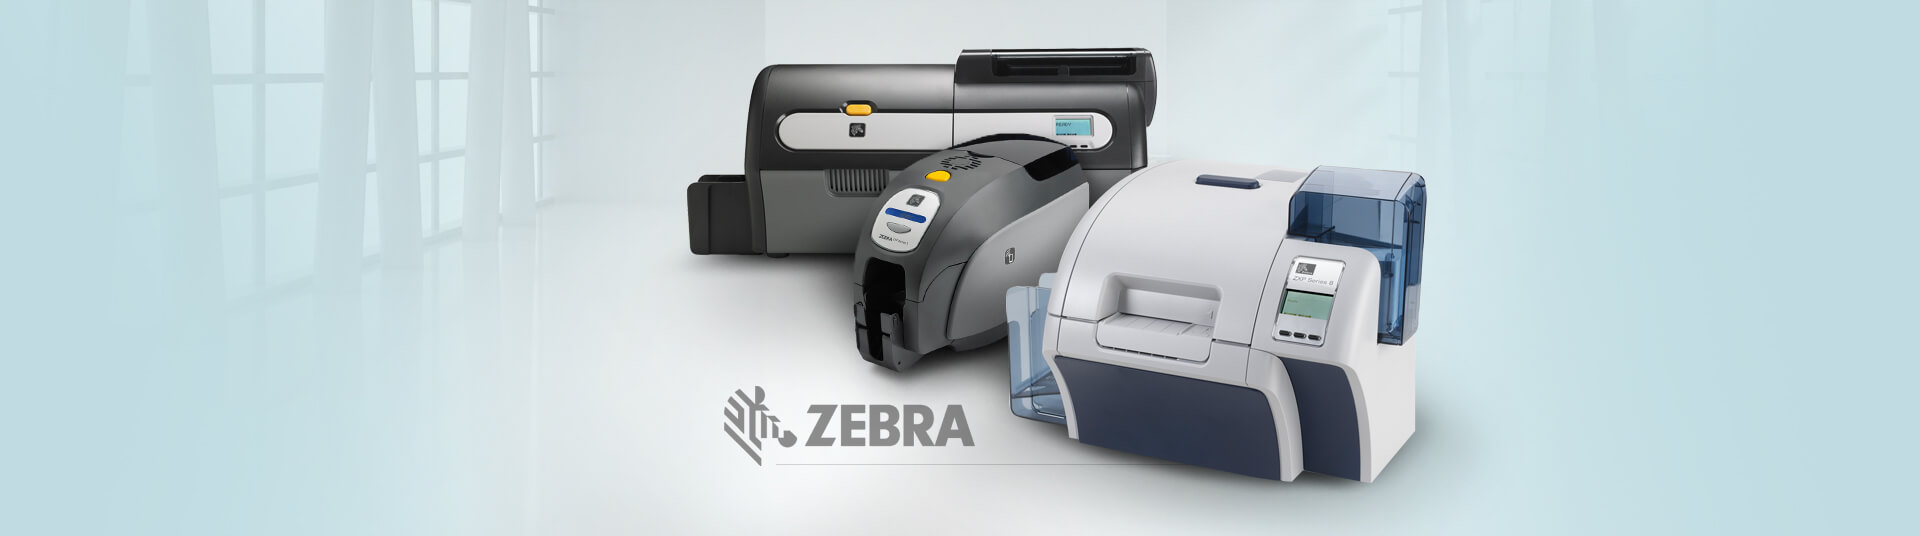 Zebra Badge Machine